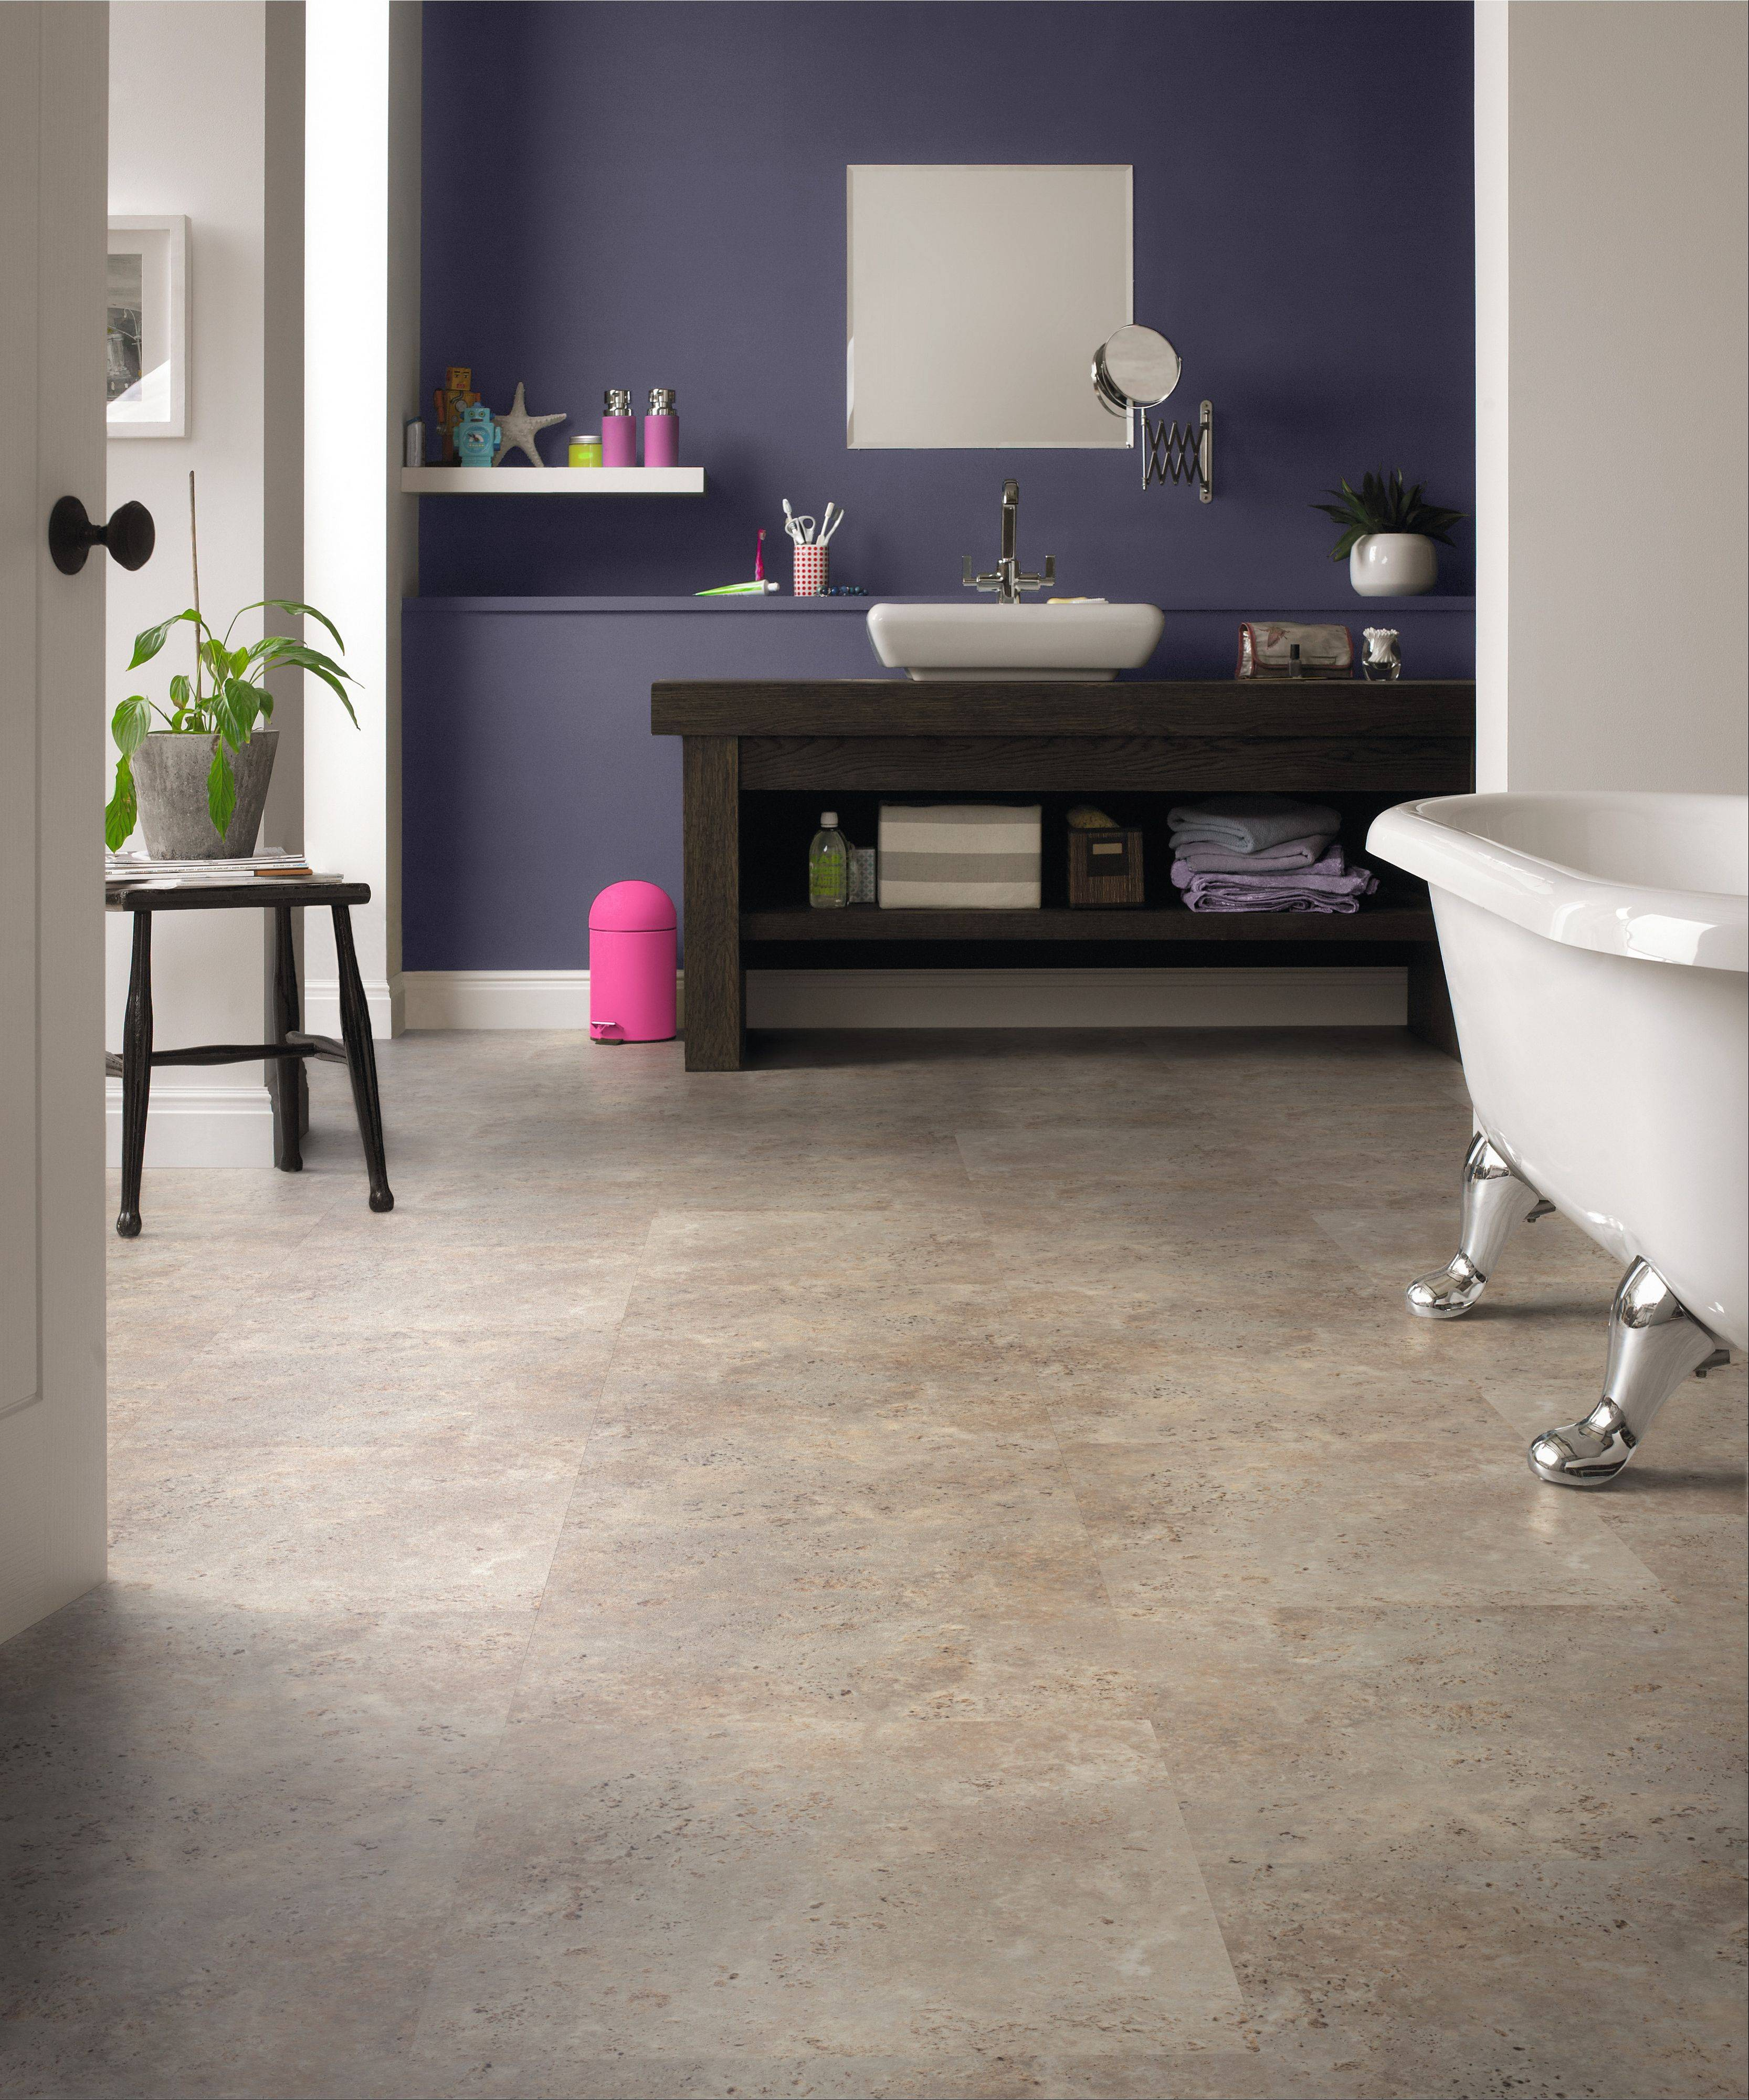 Karndean tile, in addition to the realistic look of wood or stone, also provides ease of installation and protection from devastation because the tile does not have to be glued in place. It has a nonskid backing that allows it to stay in place without being permanently installed.